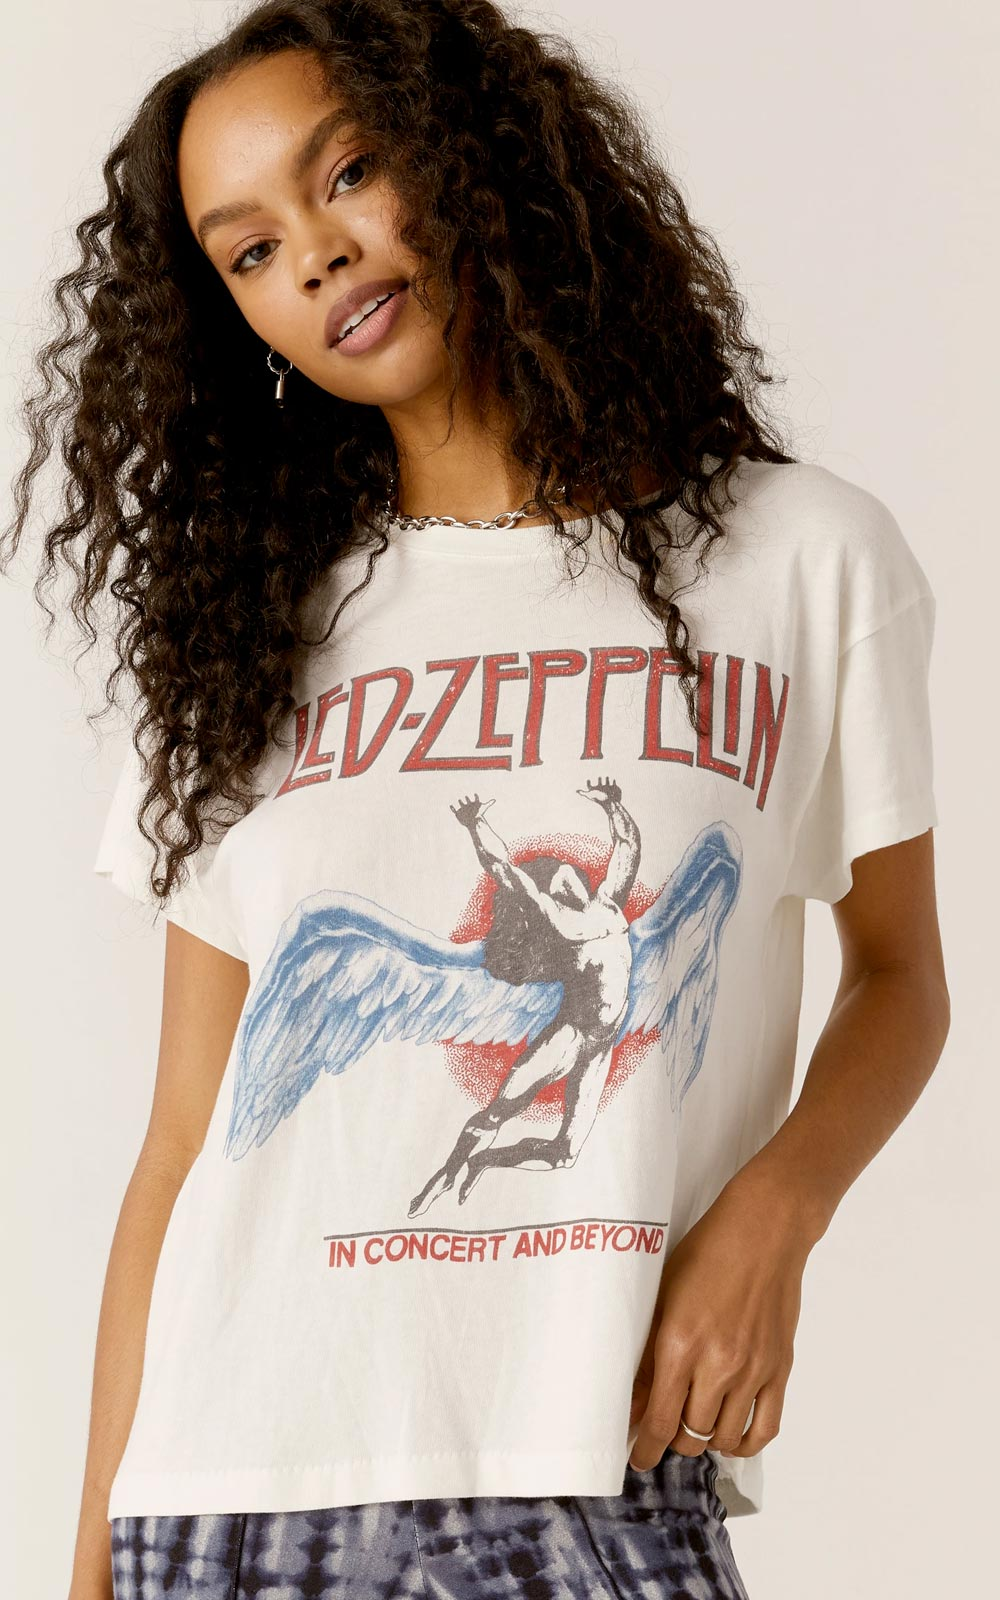 Led Zeppelin In Concert And Beyond Tour Tee